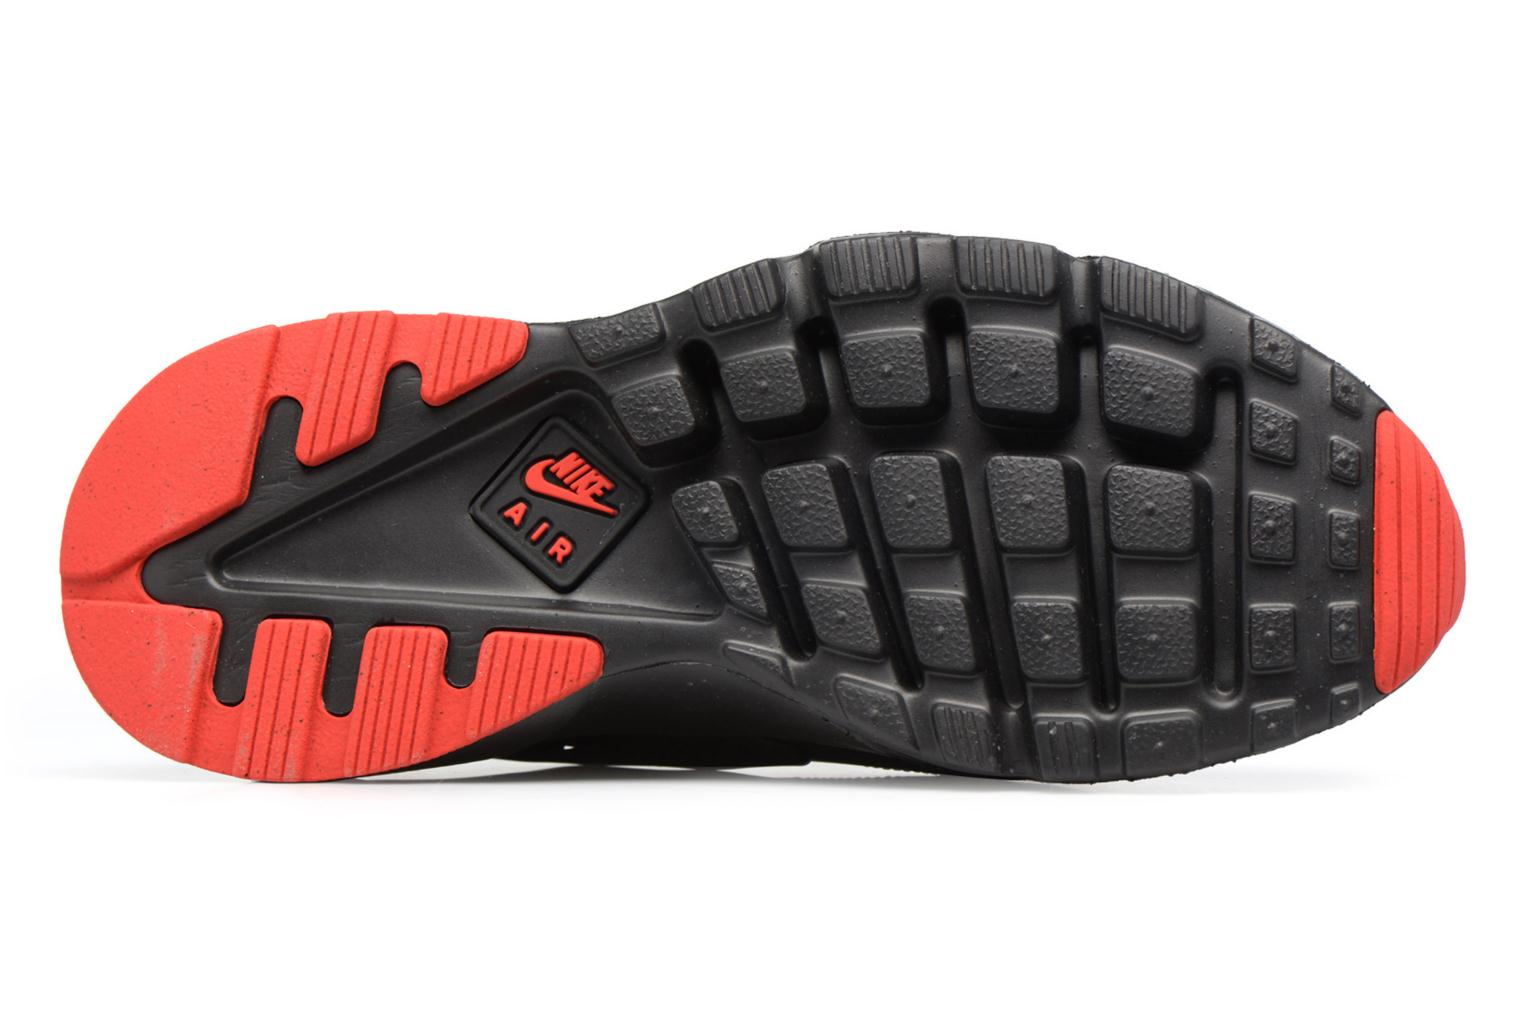 Nike Air Huarache Run Ultra Black/Metallic Silver-University Red